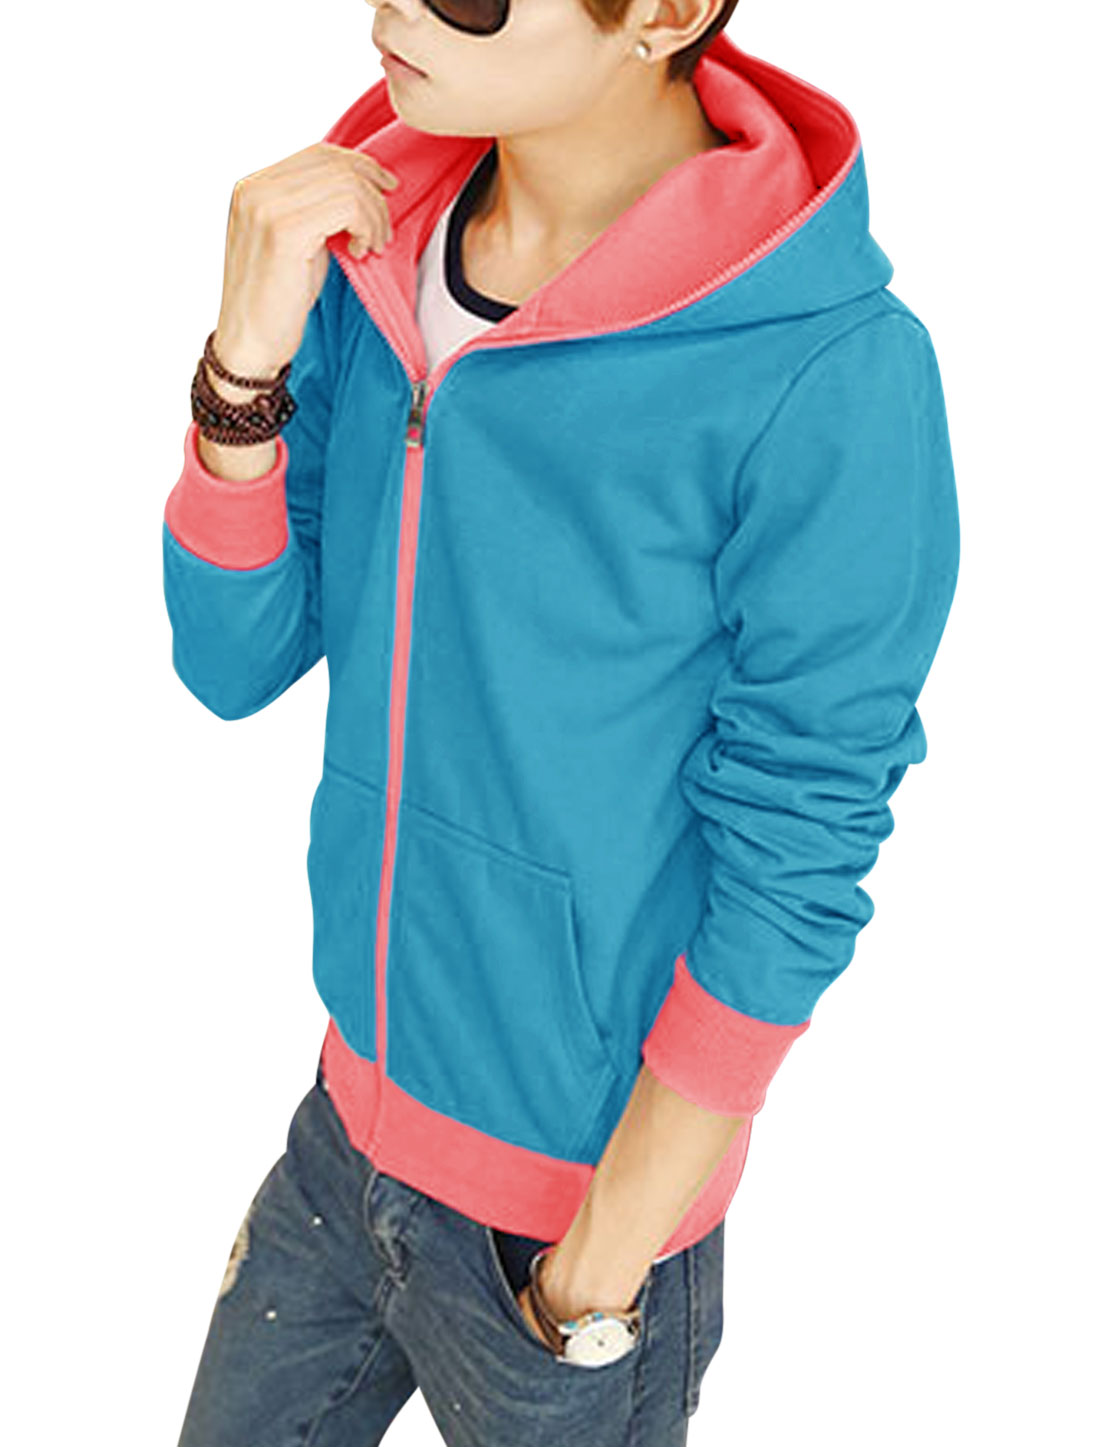 Men Contrast Color Long Sleeves Zip Up Hooded Jacket Blue Pink M